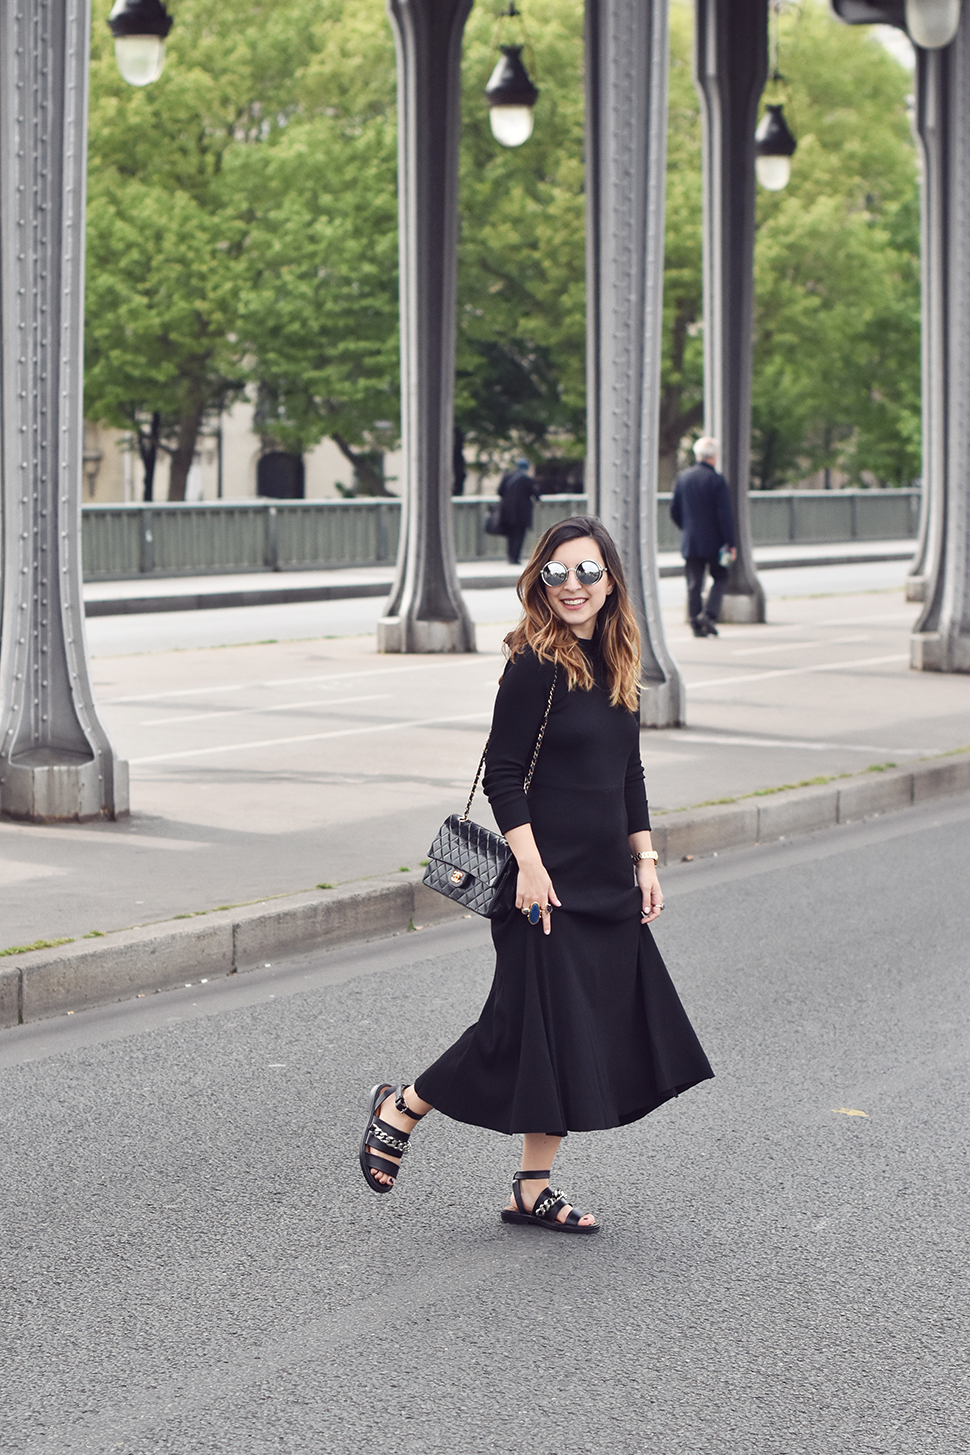 Helloitsvalentine_blackdress_BirHakeim_Givenchy_sandals_2